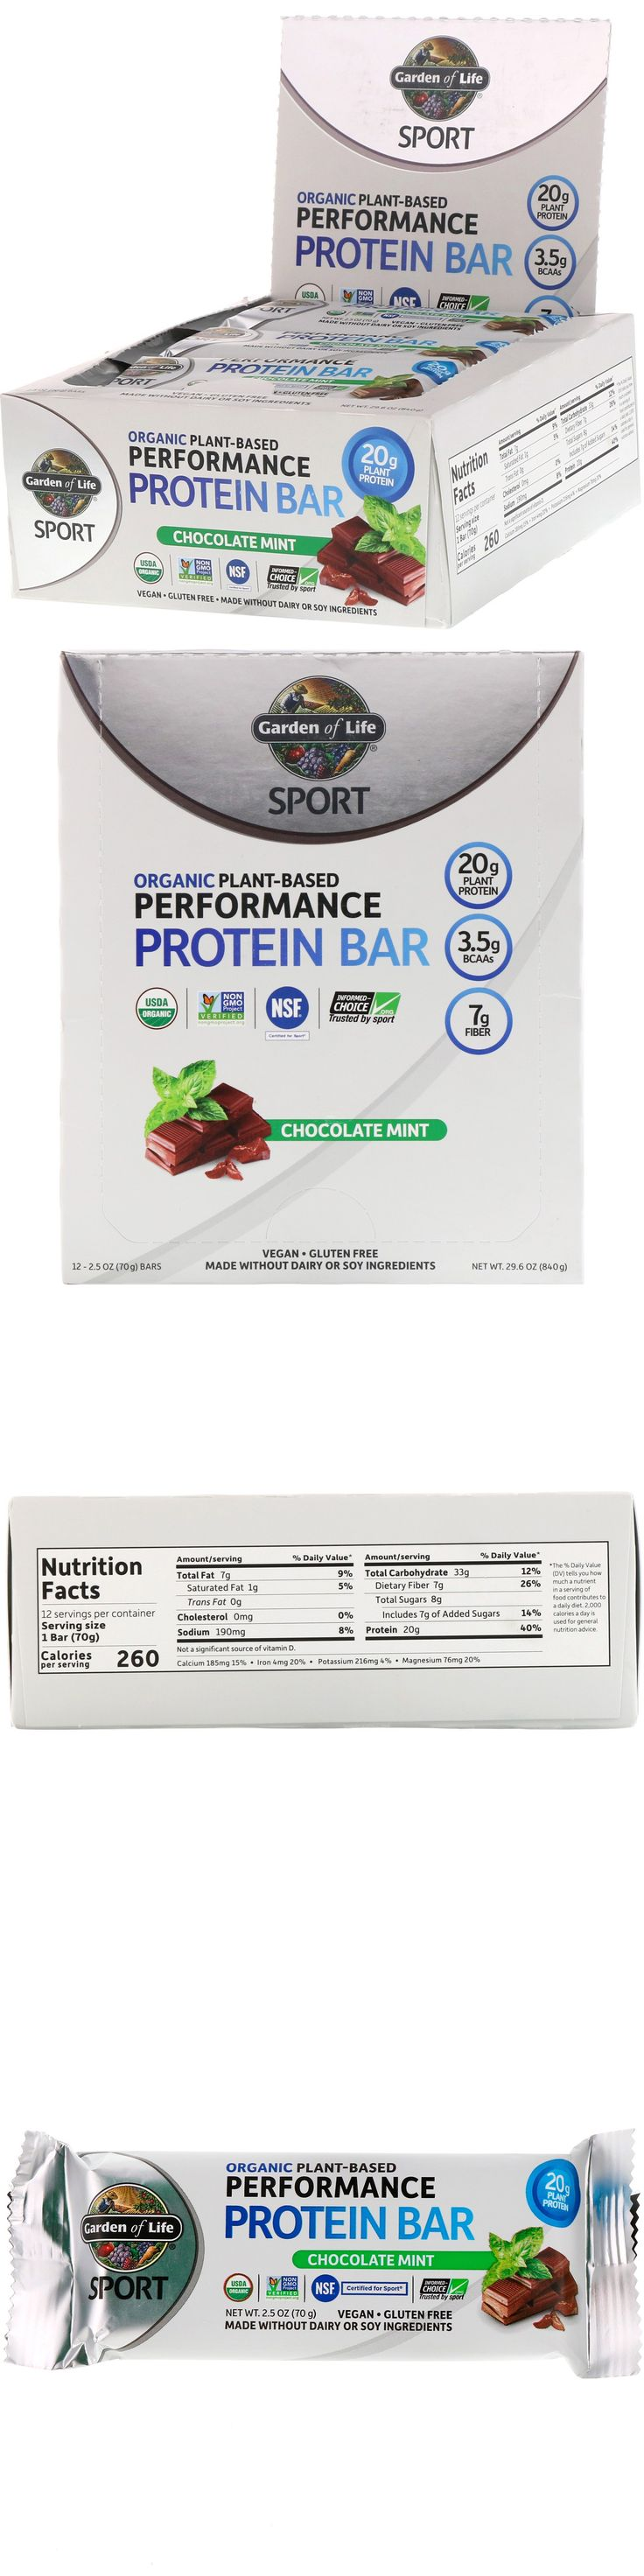 Sport, Organic PlantBased Performance Protein Bar